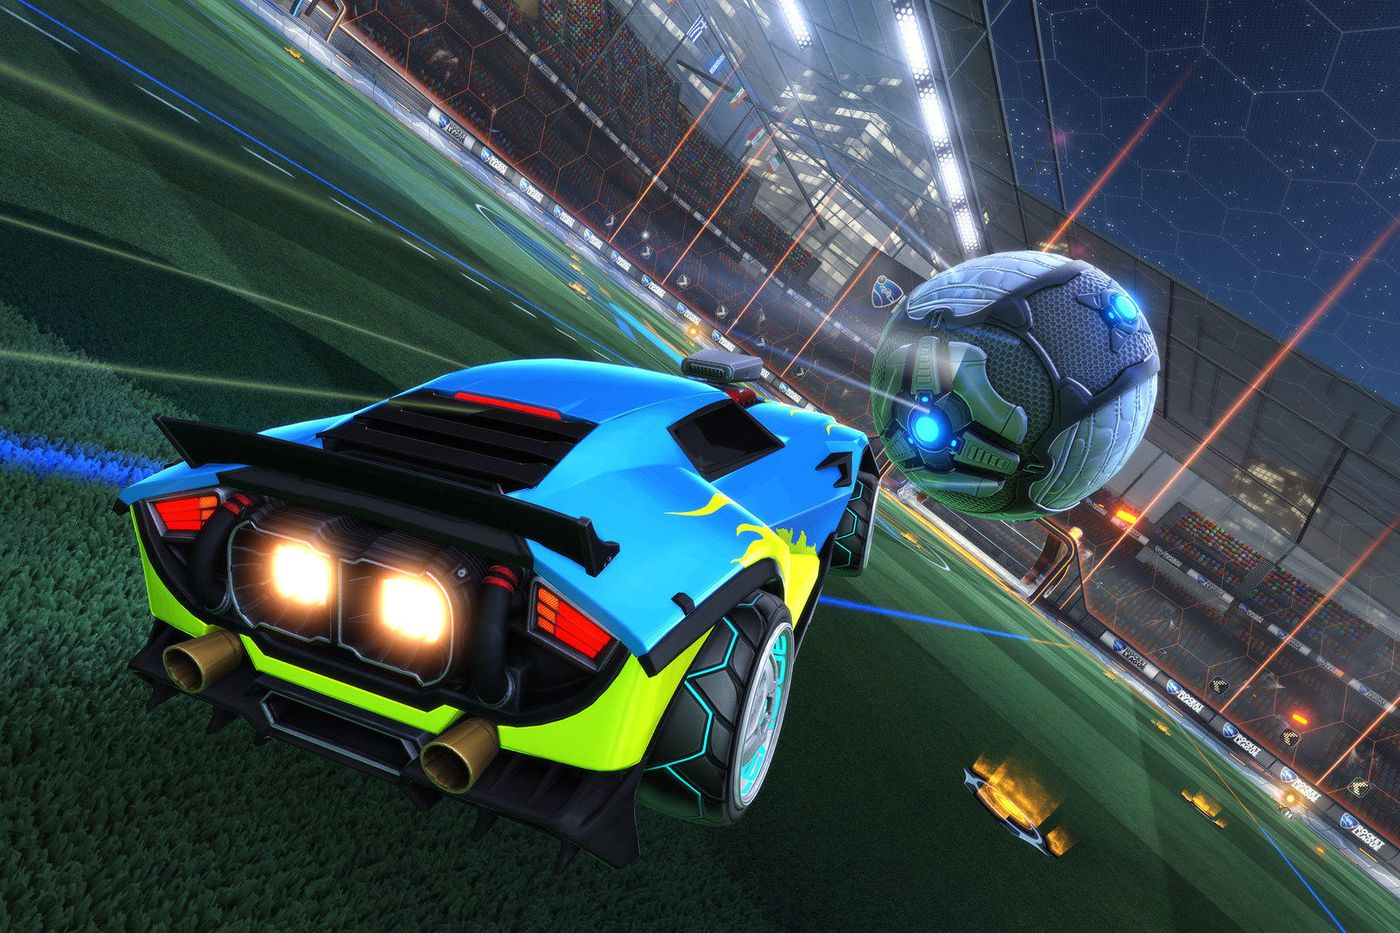 Epics Rocket League Acquisition Made A Messy Situation Even